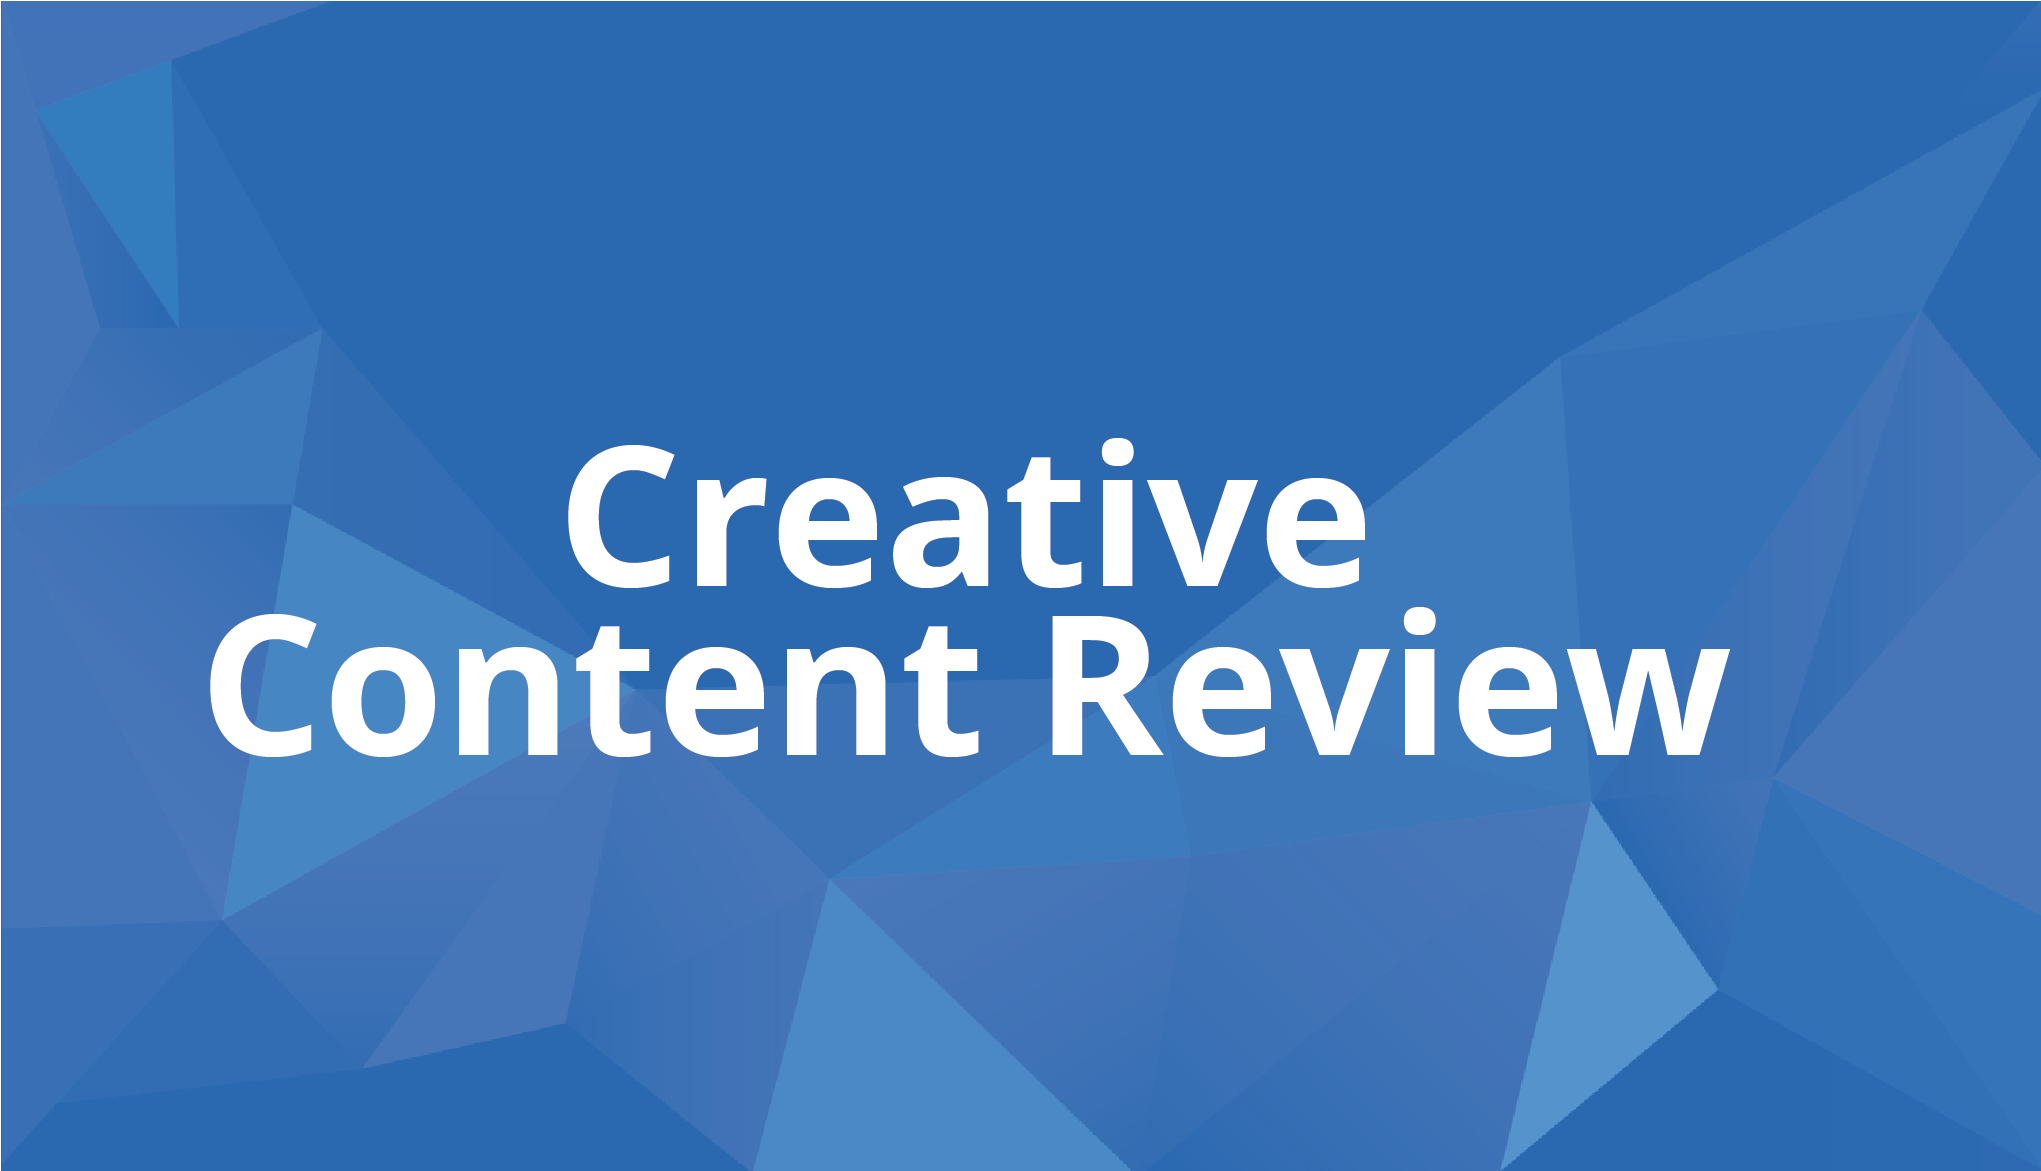 Use this workflow for streamlining the review process for creative content.